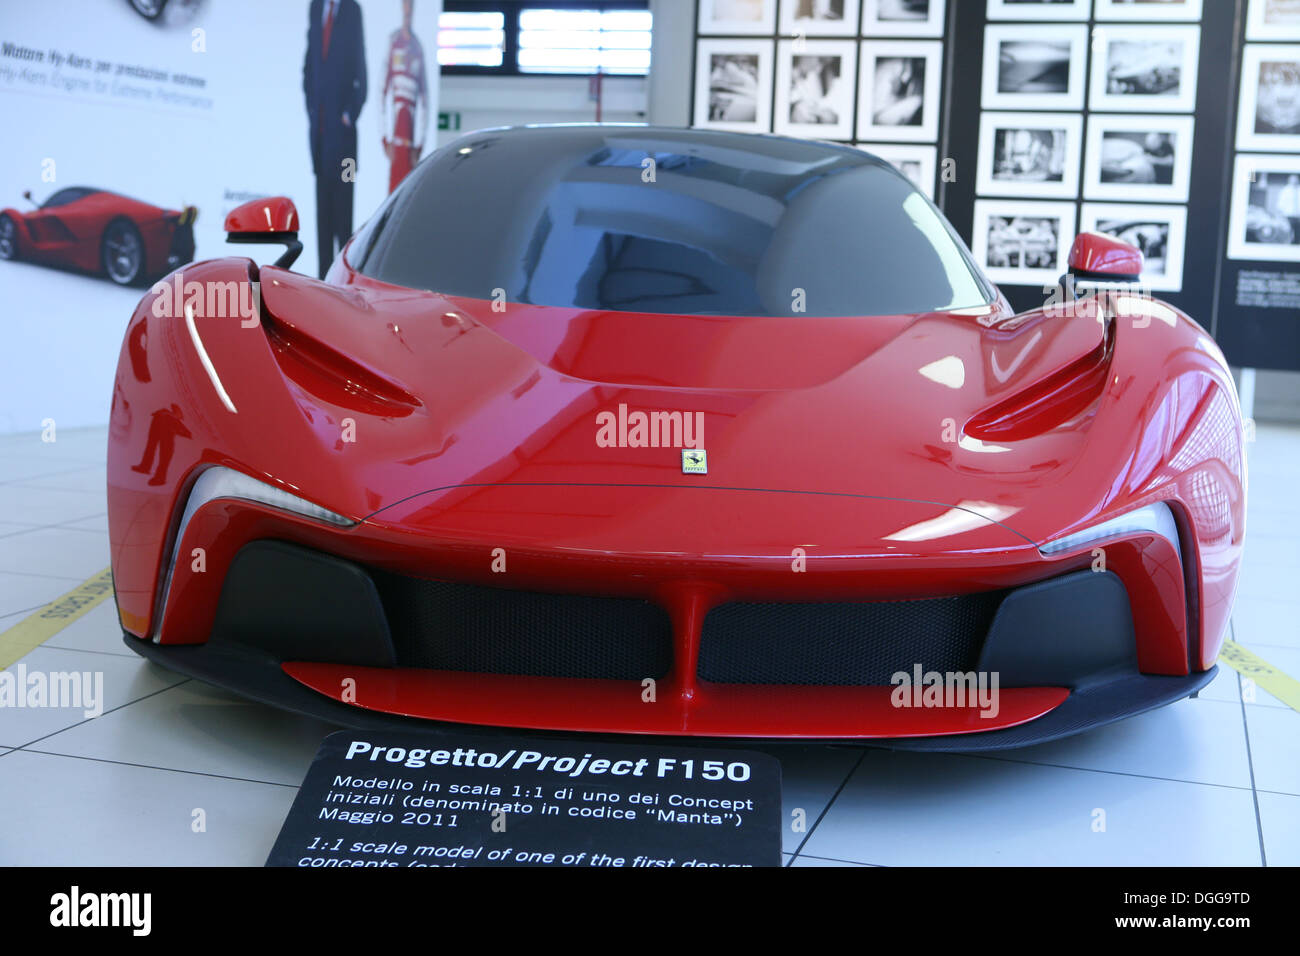 Ferrari one of the first design concepts for the f150 project ferrari one of the first design concepts for the f150 project code named manta vanachro Gallery